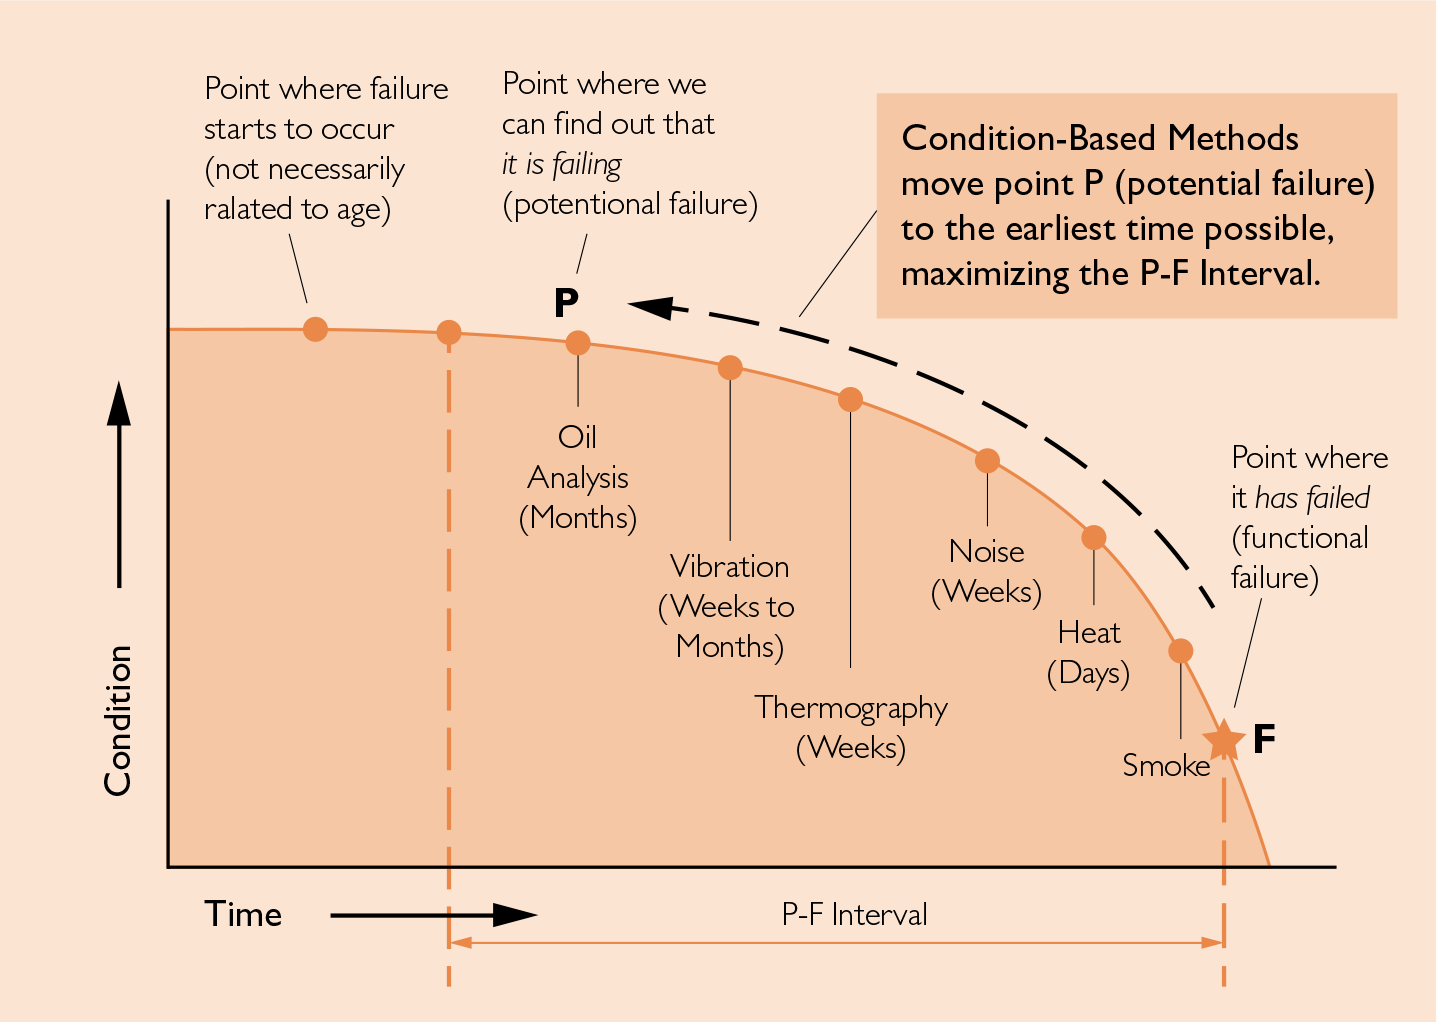 Maximizing the P-F Interval Through Condition-Based